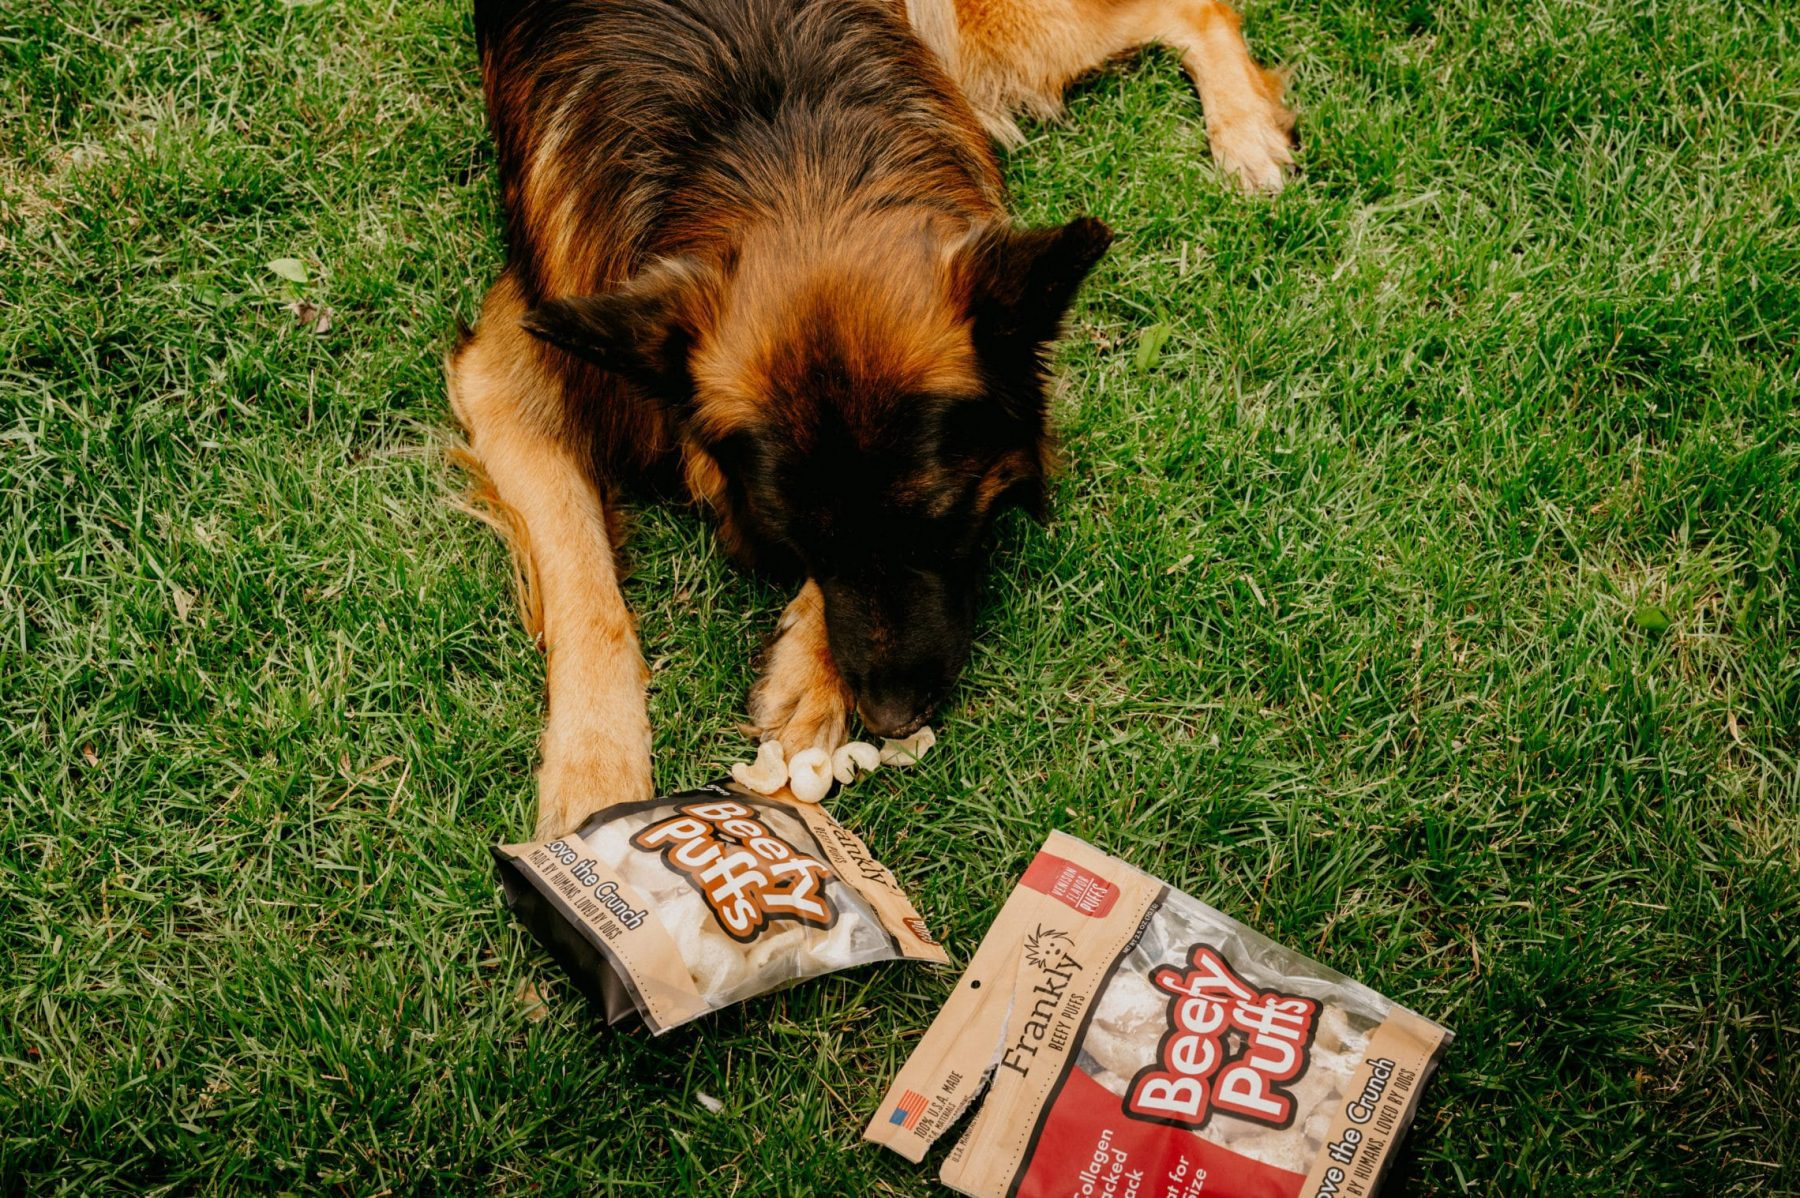 Frankly Beefy Puff dog treats